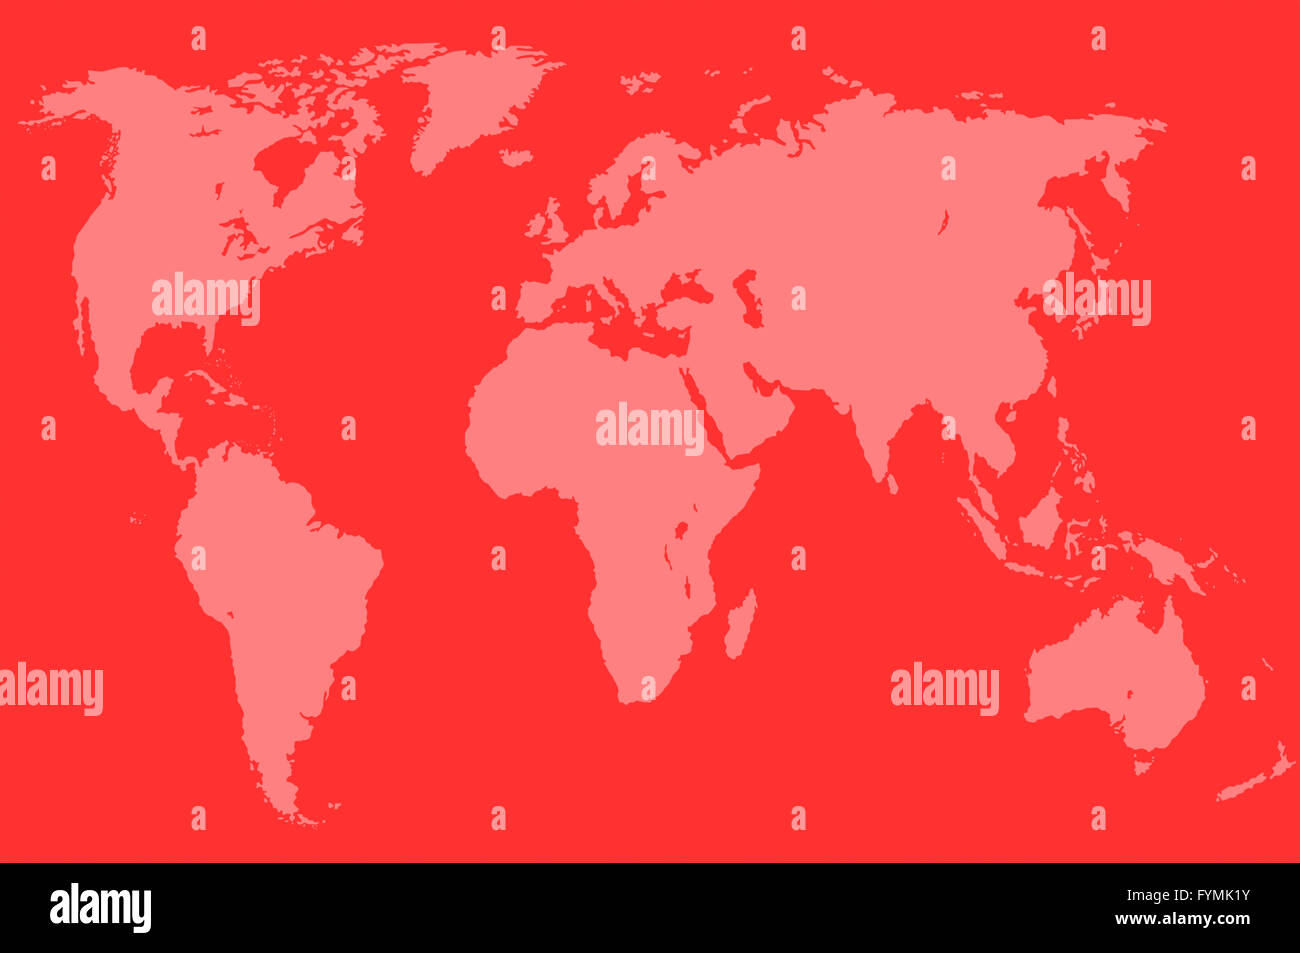 red world map, isolated - Stock Image